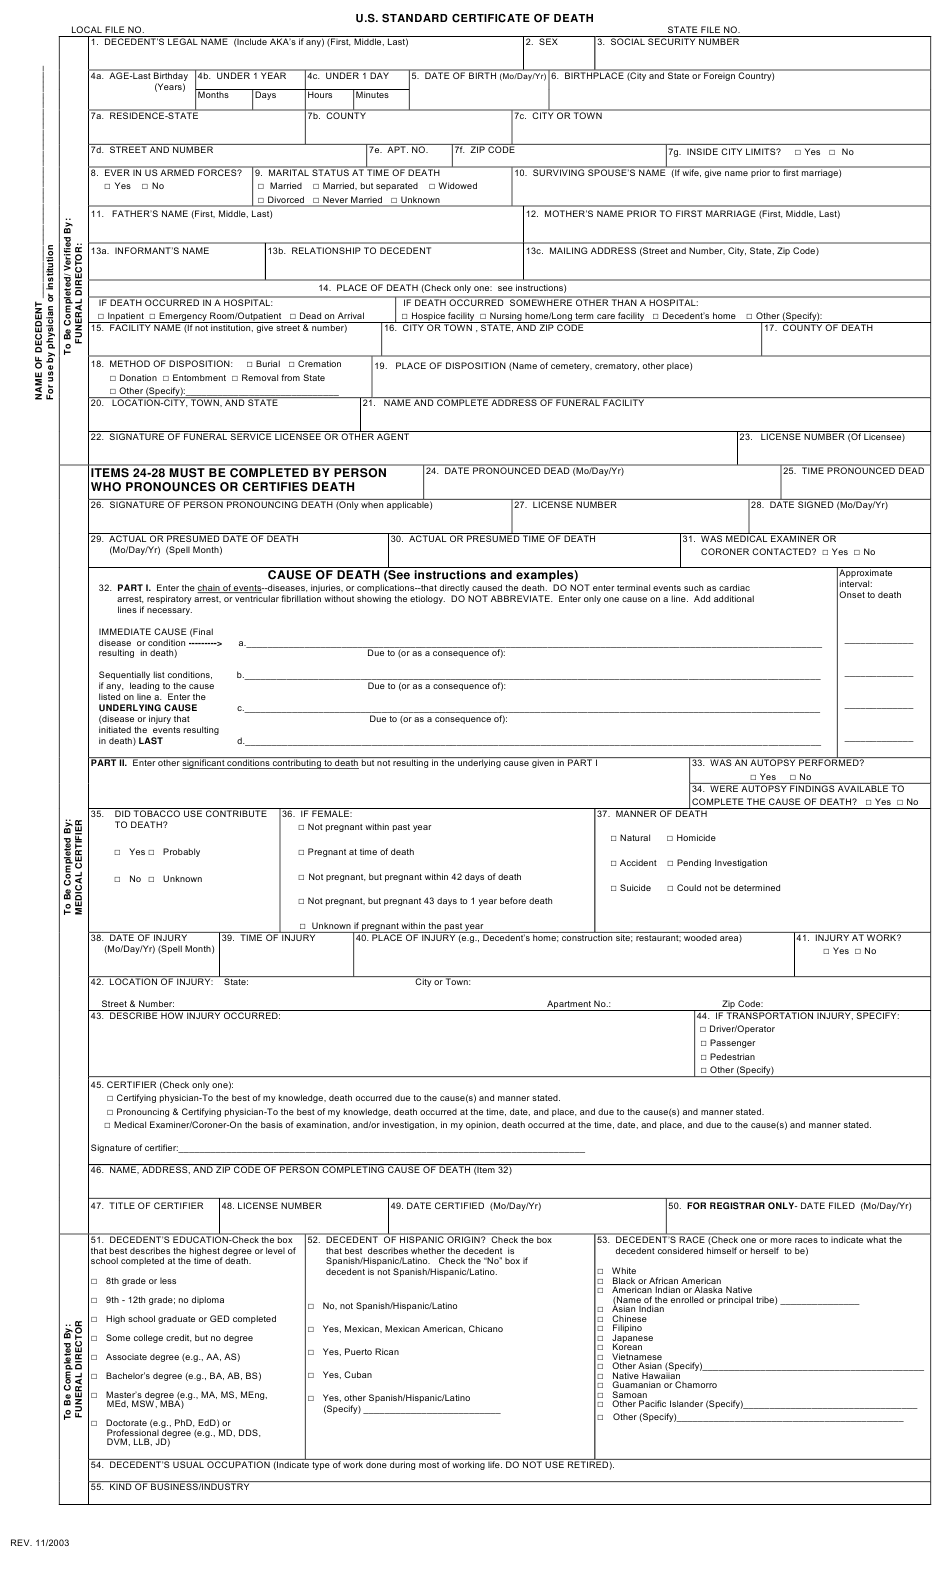 U.S. Standard Certificate of Death Download Printable PDF Within Baby Death Certificate Template